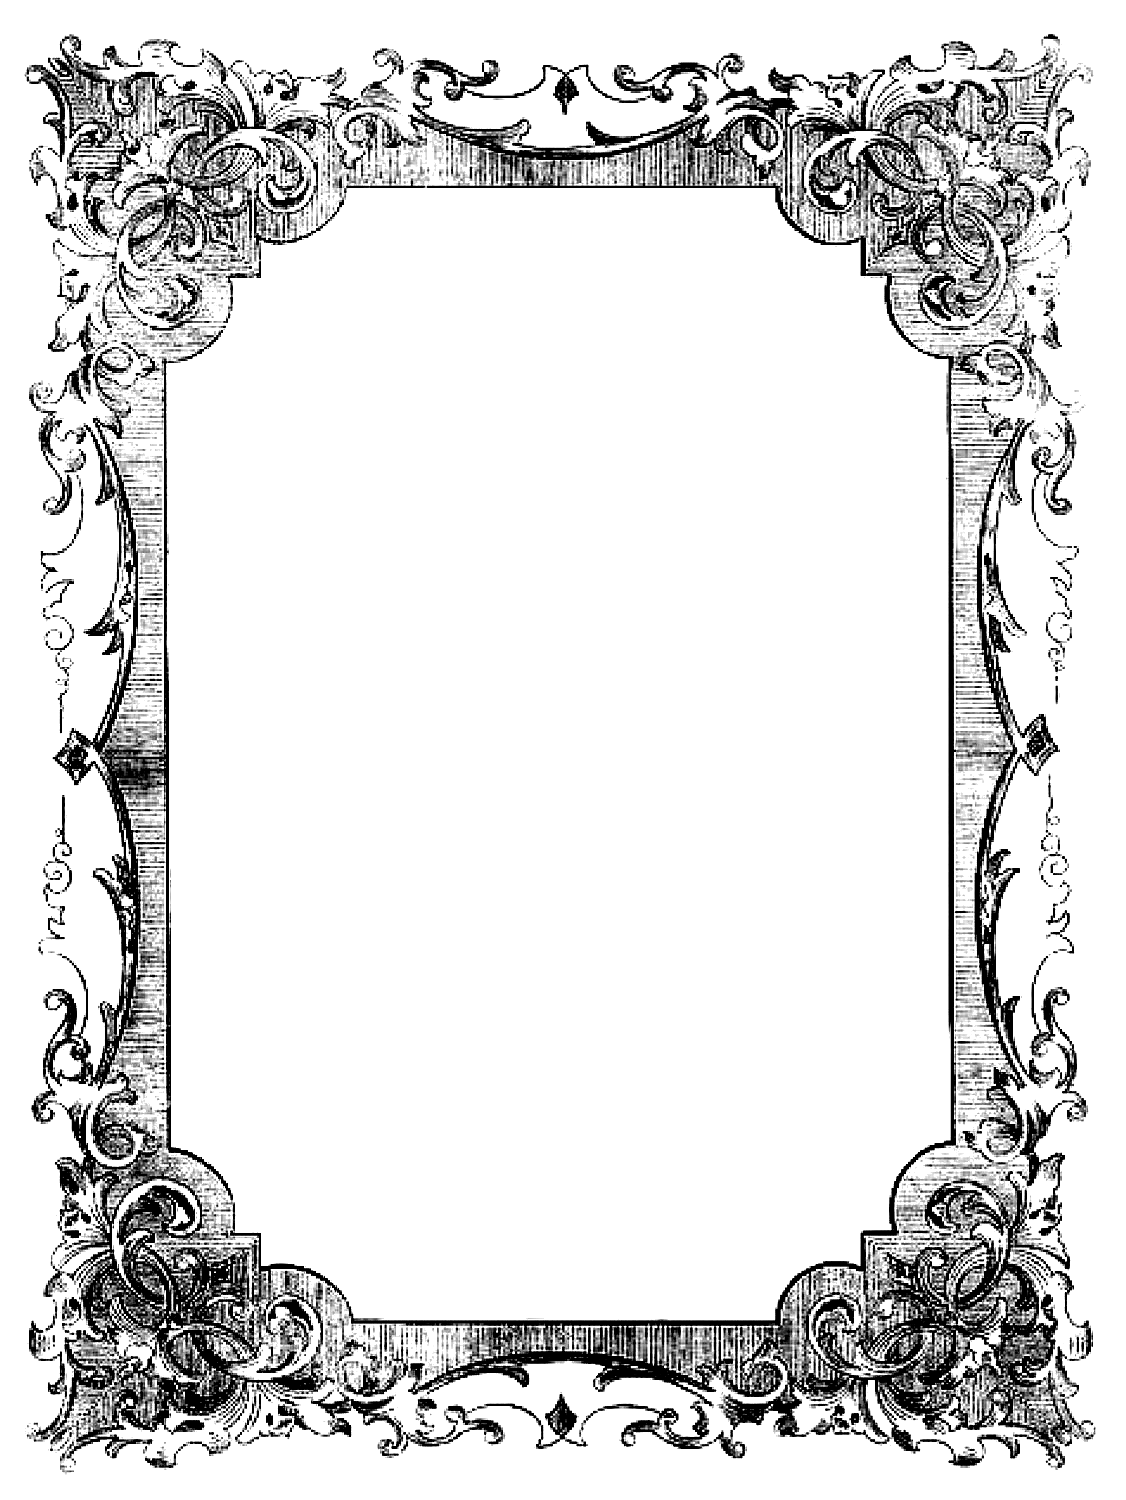 Free frame clipart book image transparent library Transparent Frames | Be Book Bound: Jane Austen Month, Day 20 ... image transparent library